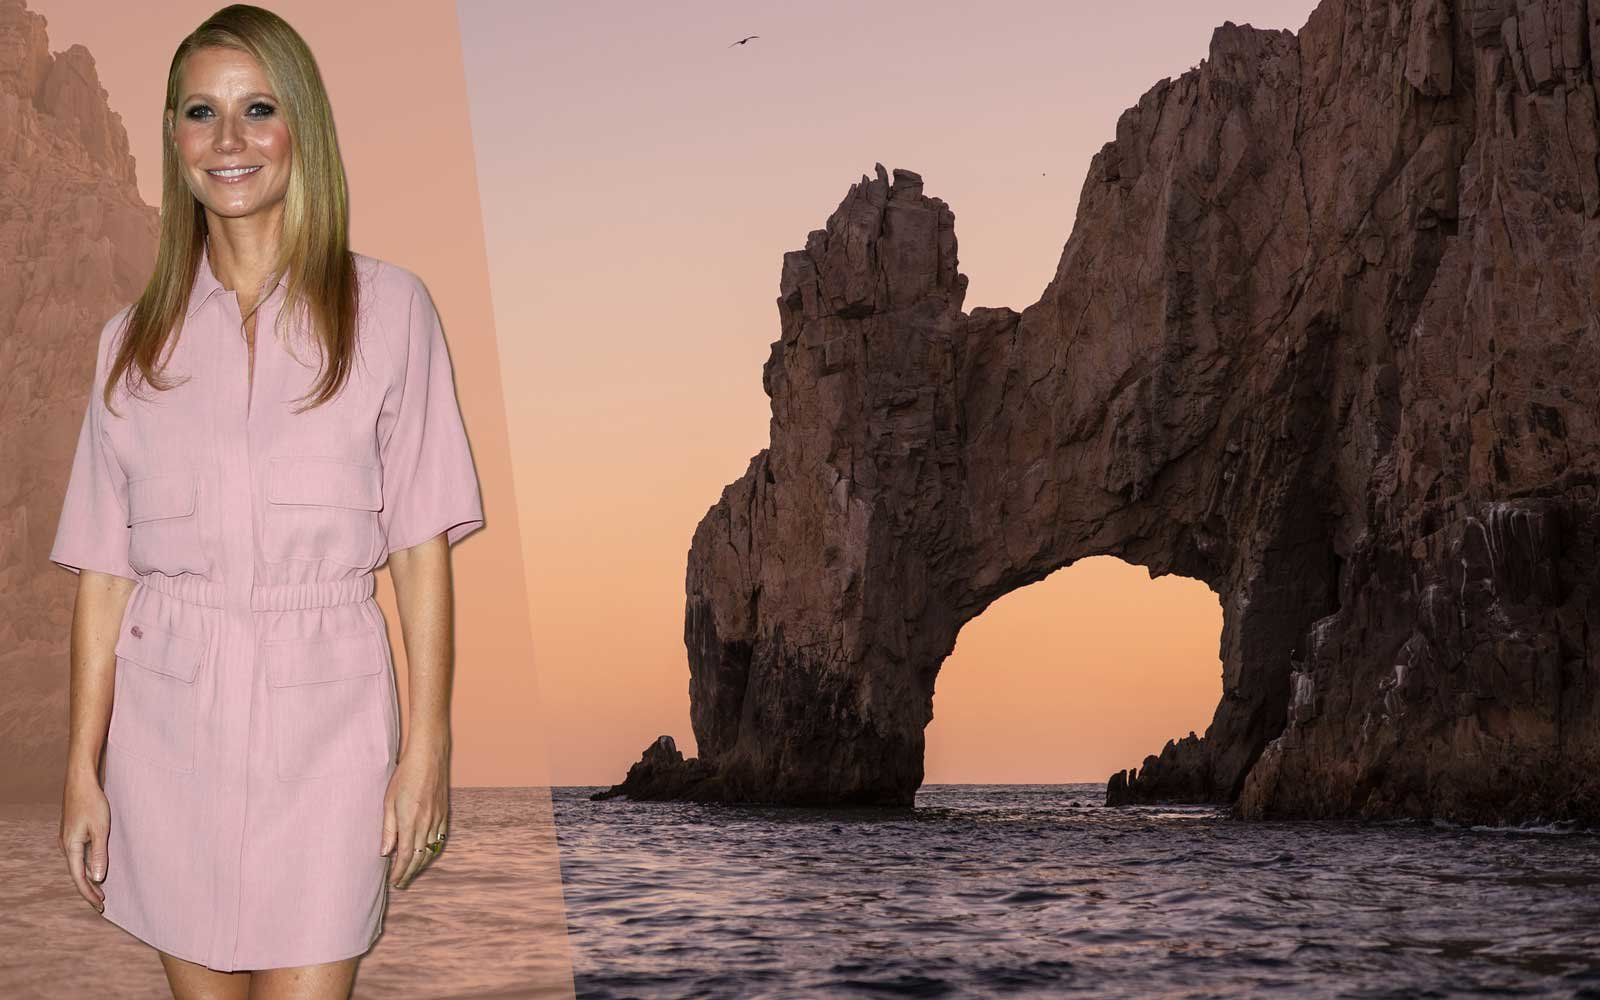 Gwyneth Paltrow opts for Mexico as her bachelorette destination